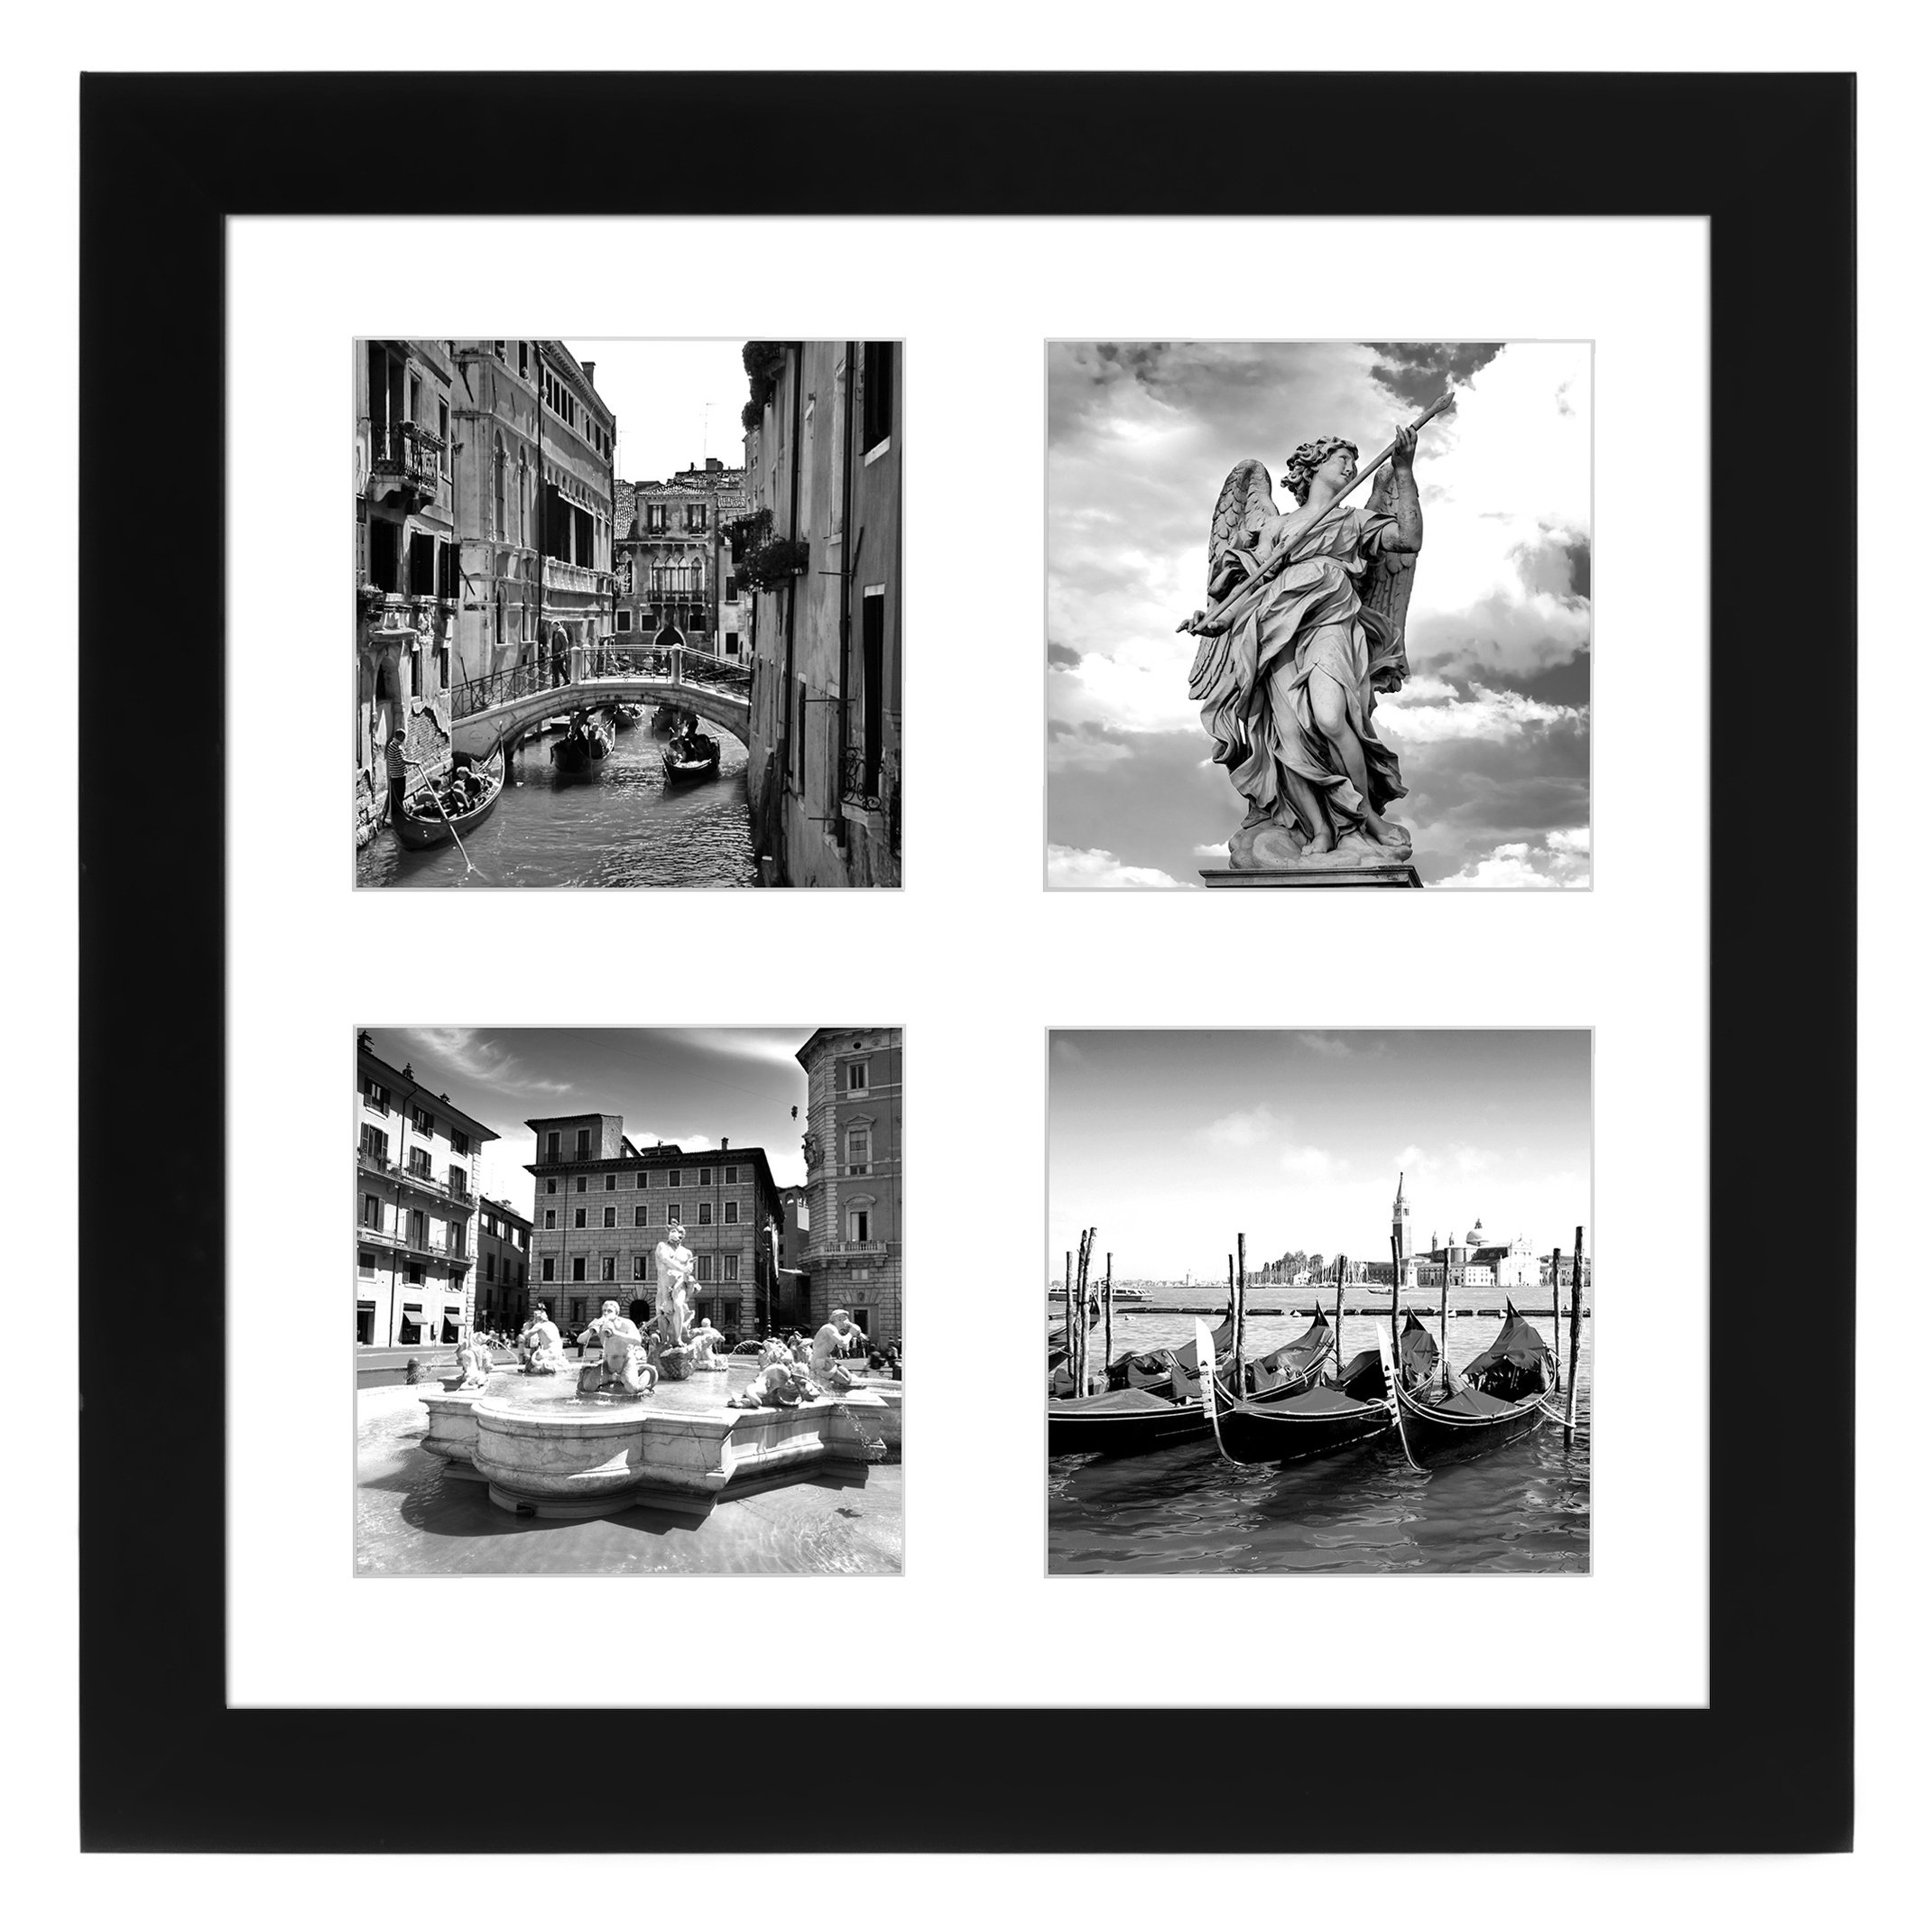 Americanflat Top Rated Black Collage Picture Frame Made For Four Photos Sized 4x4 Inch Smartphone Collection Glass Size 10x10 Collage Picture Frames Picture Frame Display Distressed Picture Frames